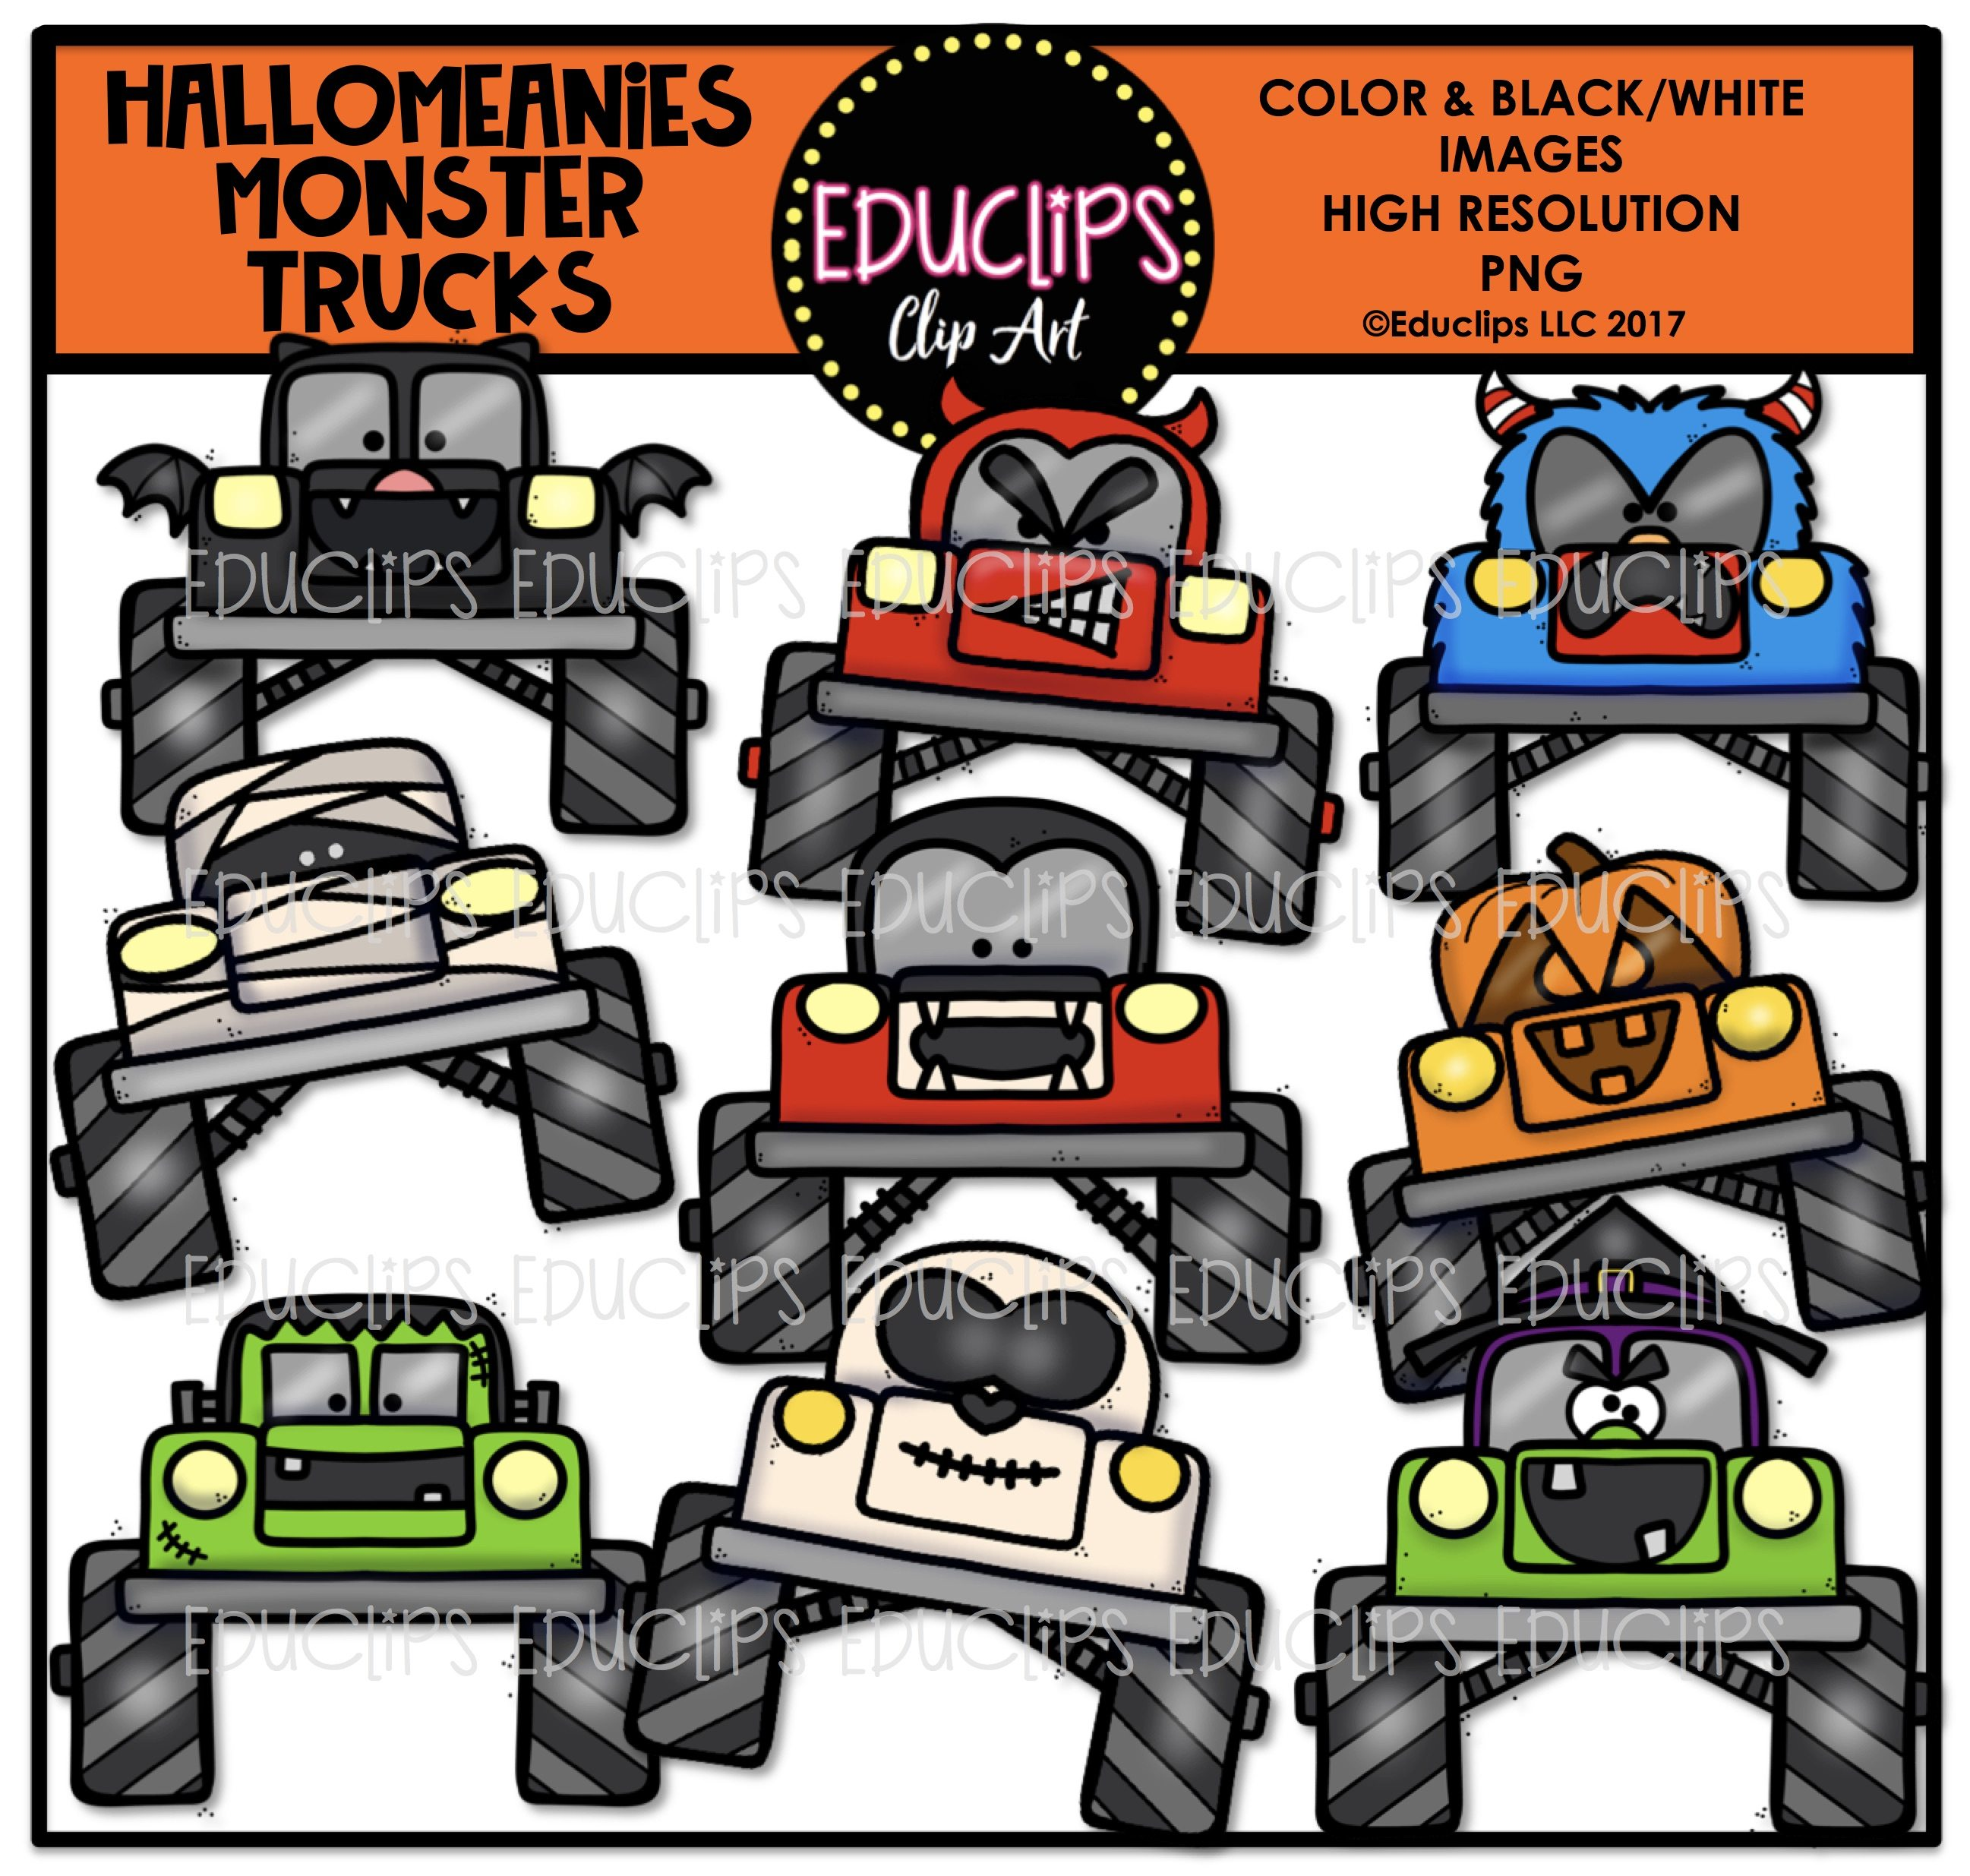 Color and art - Hallomeanies Monster Trucks Clip Art Bundle Color And